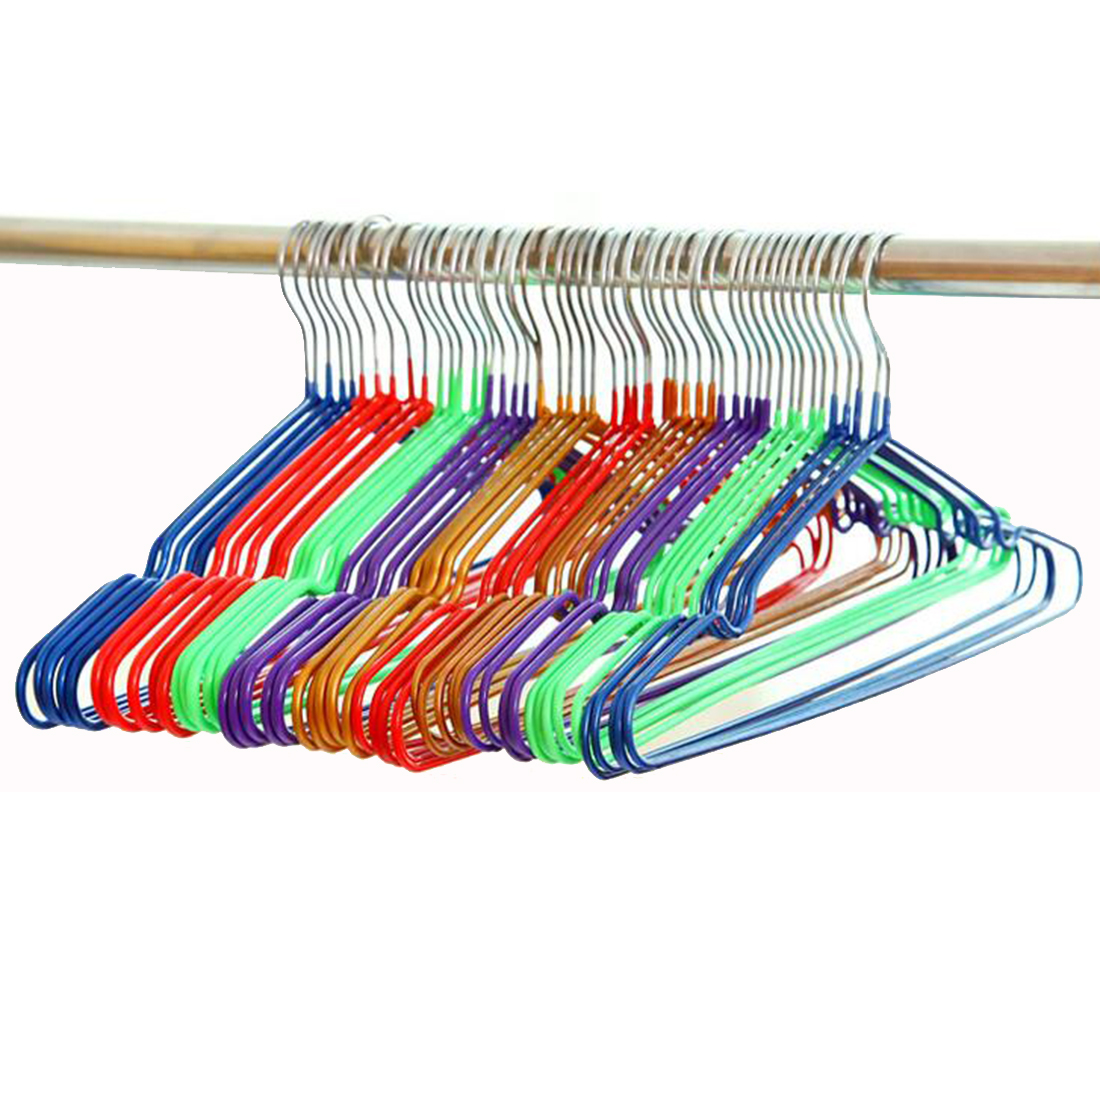 10pcs/lot 40cm Anti-skid drying and drying plastic hangers for clothes rack stainless steel hanger adult clothing rack